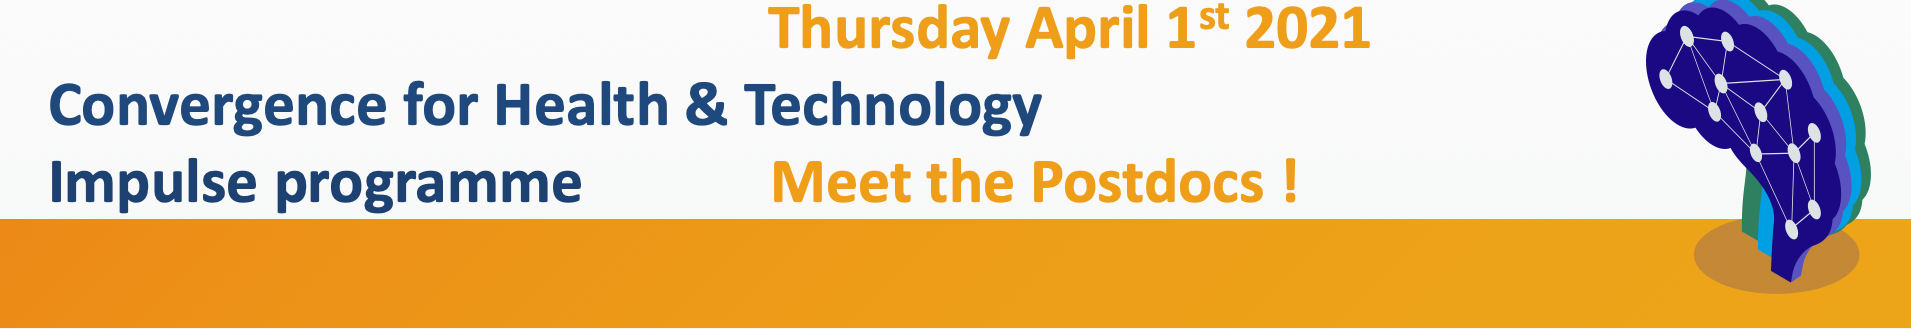 Meet the Postdocs | Convergence for Health & Technology